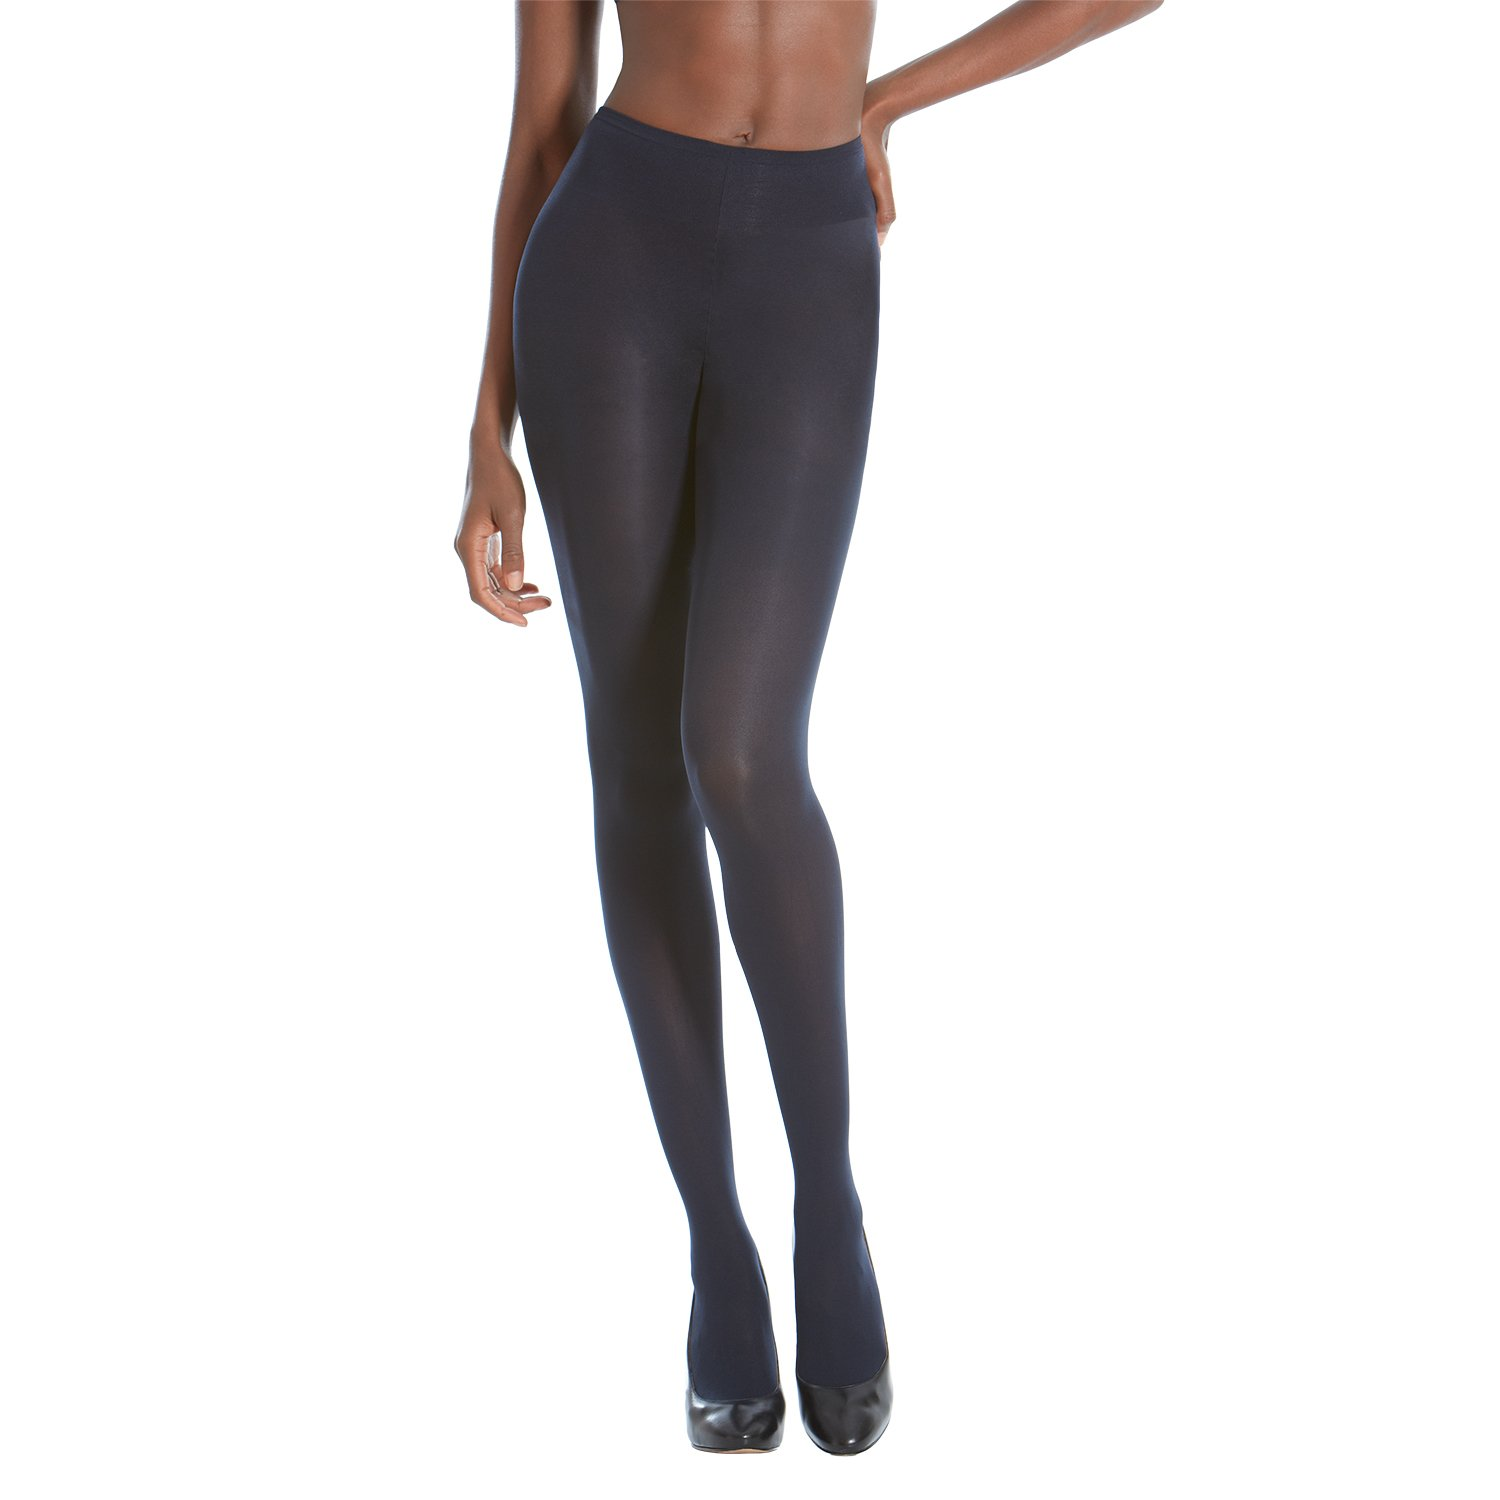 Gold Toe womens standard Sheer to Waist Semi Opaque Perfect Fit Tights, 1 Pair